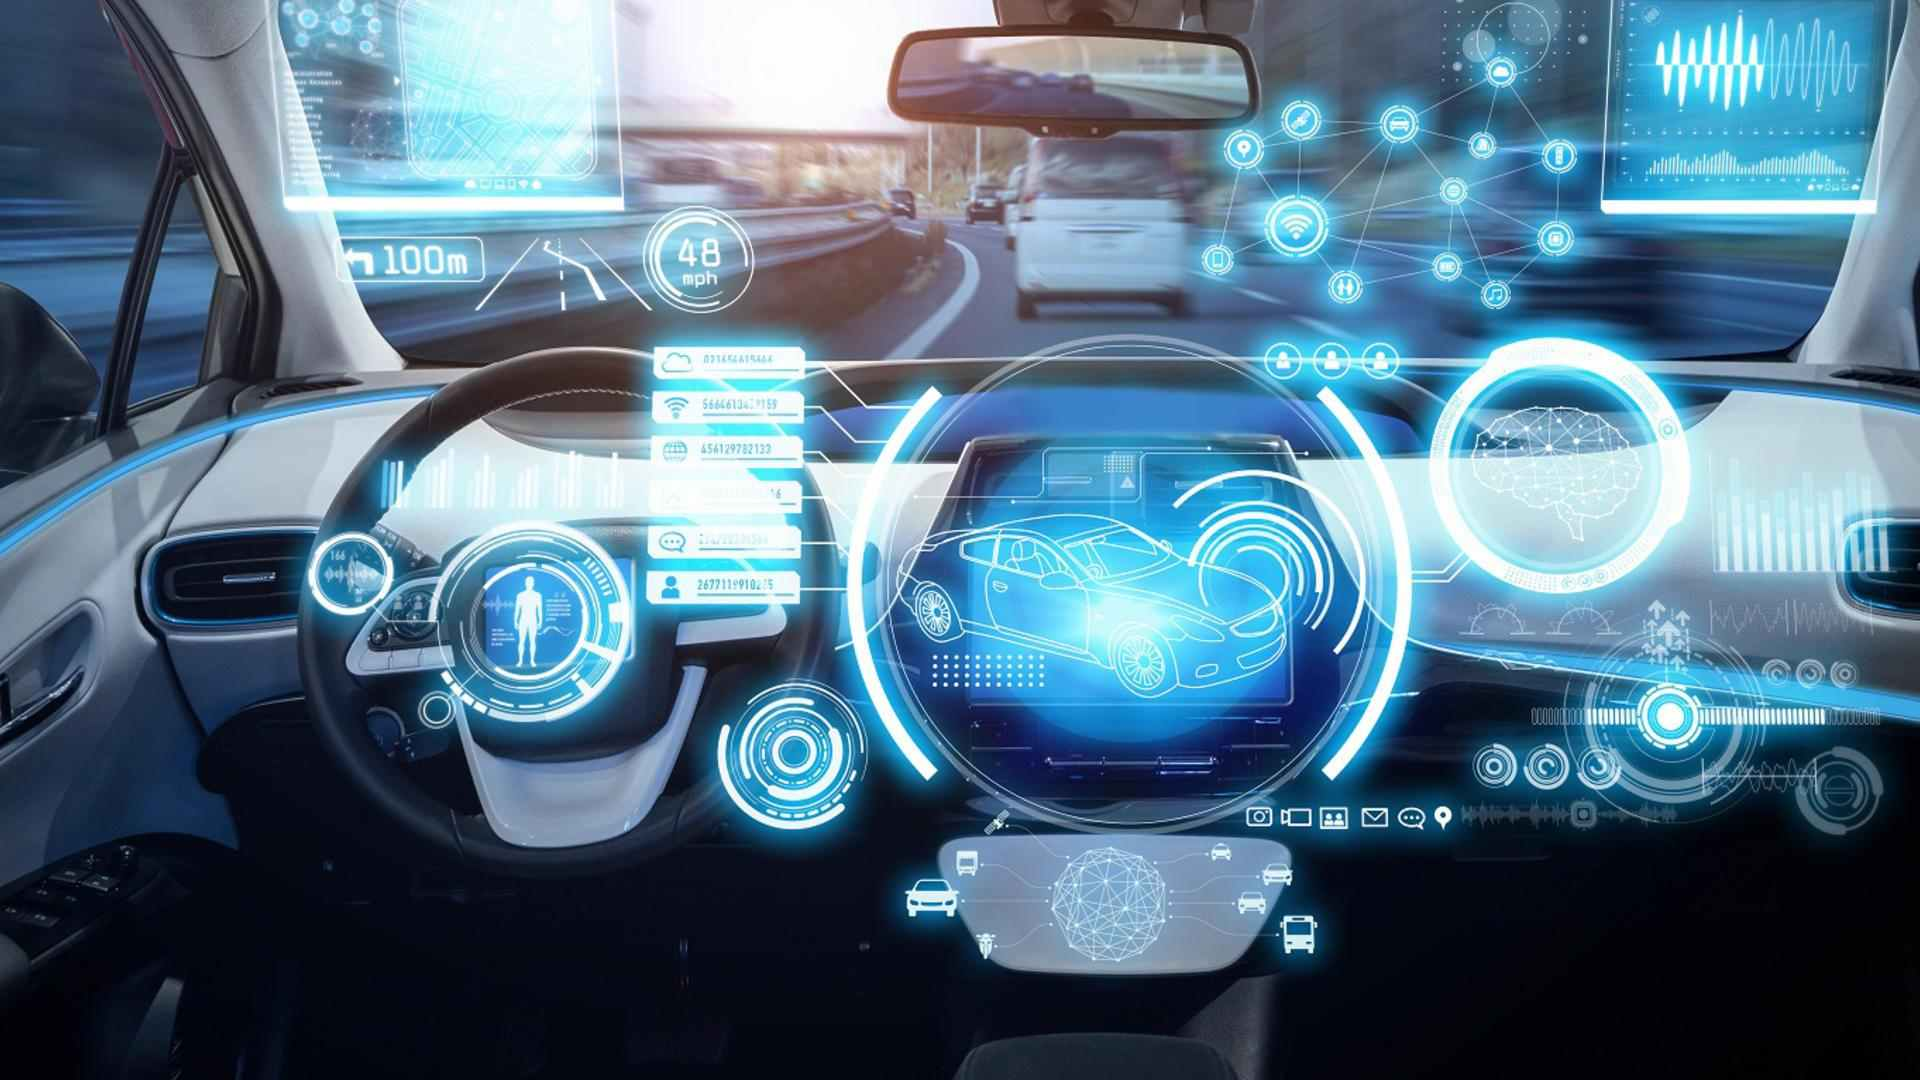 Global-Connected-Vehicle-Market